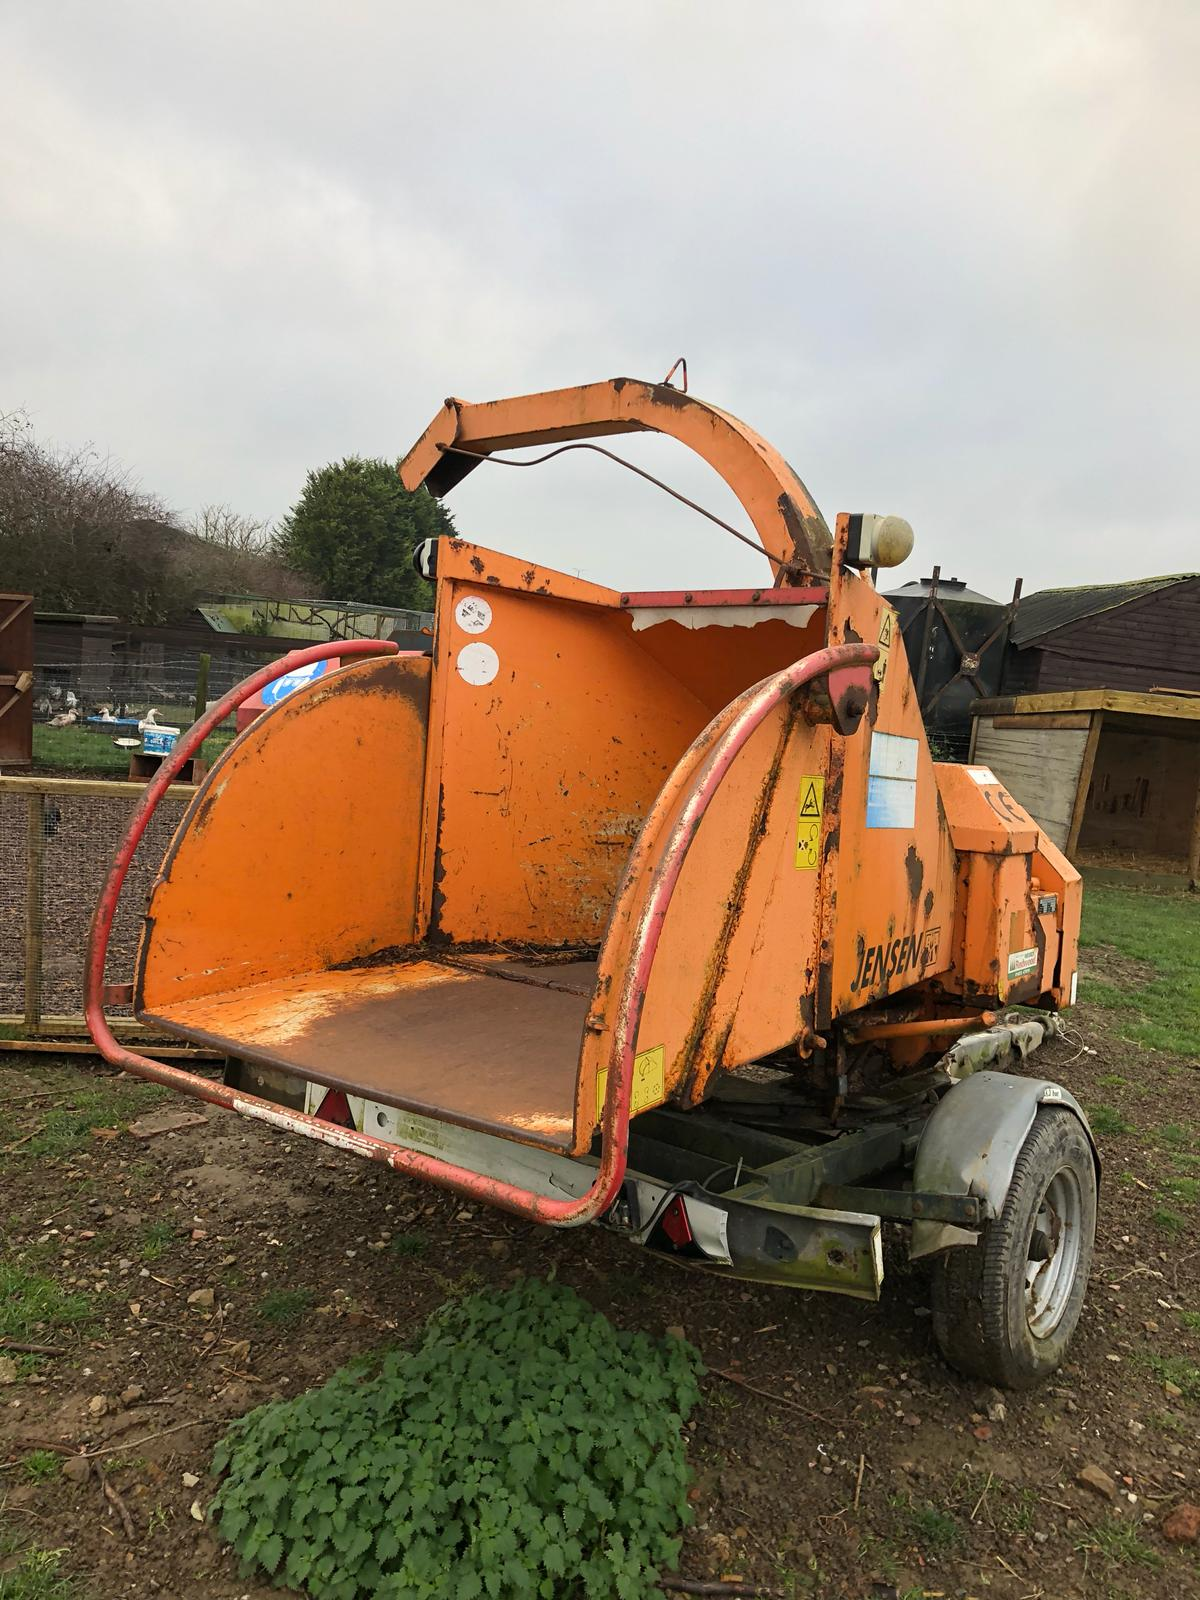 DS - QUALITY 2004 JENSEN DIESEL TURNTABLE CHIPPER, QUALITY TRAILER - Bild 4 aus 8